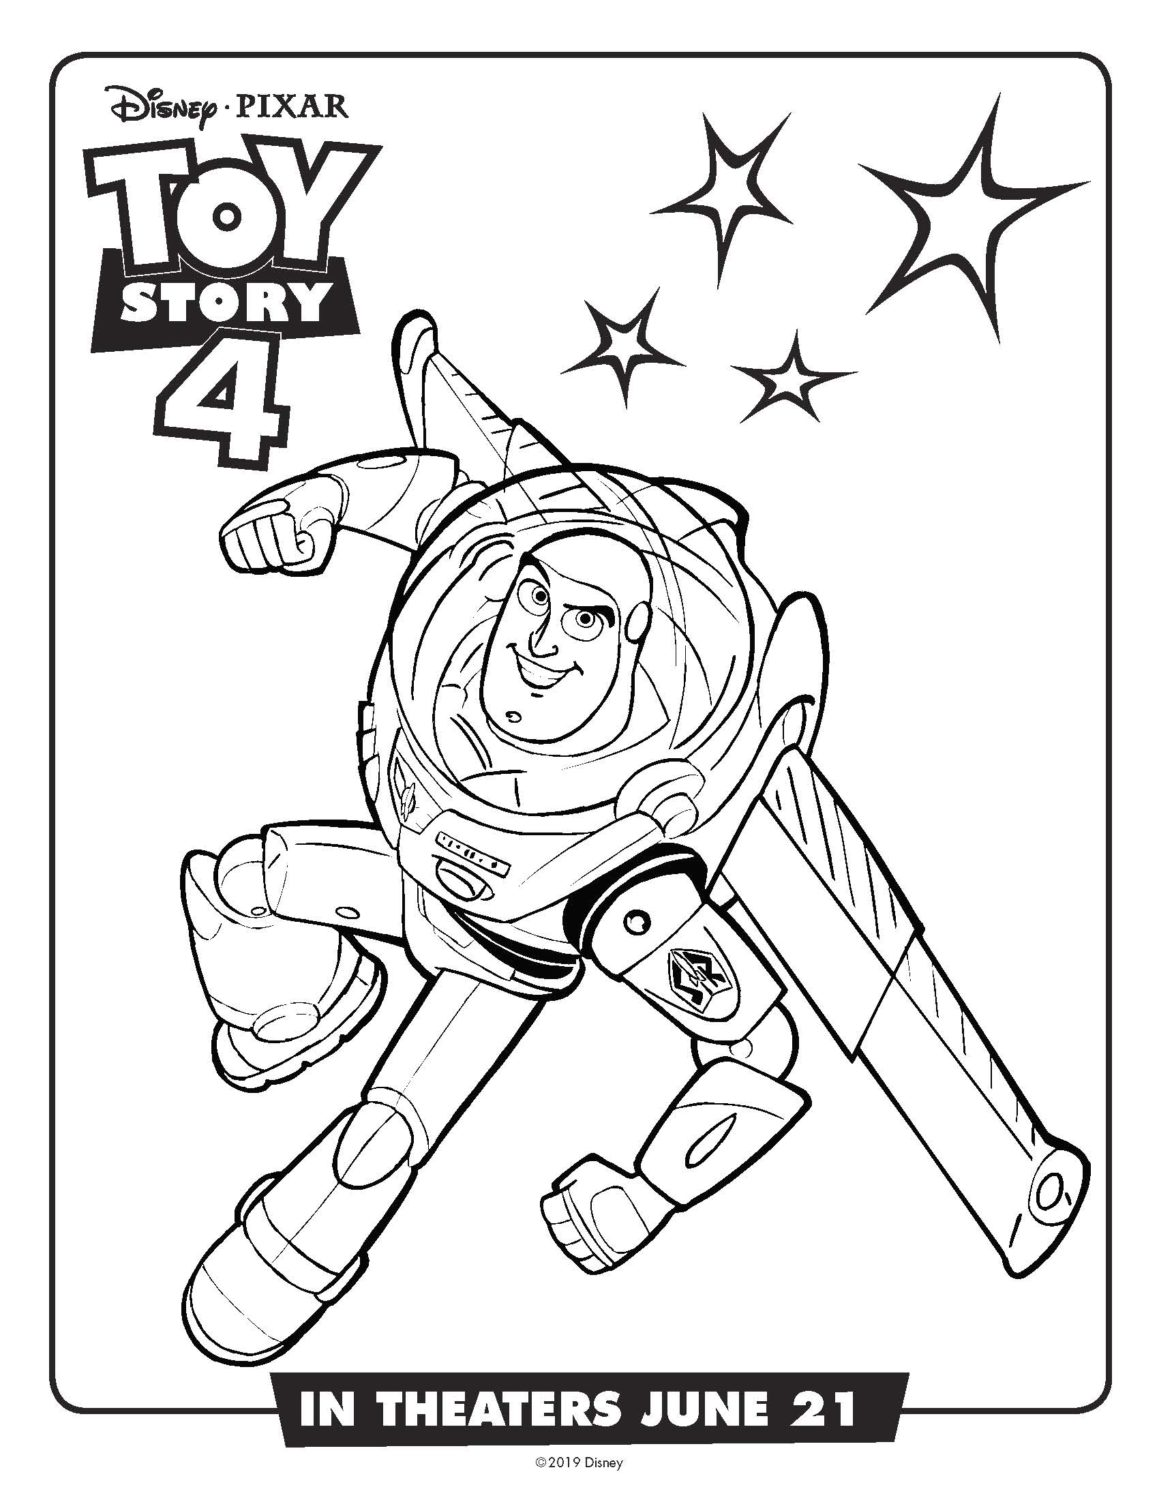 Toy Story 4 Buzz Lightyear Coloring Page and Activity Sheet